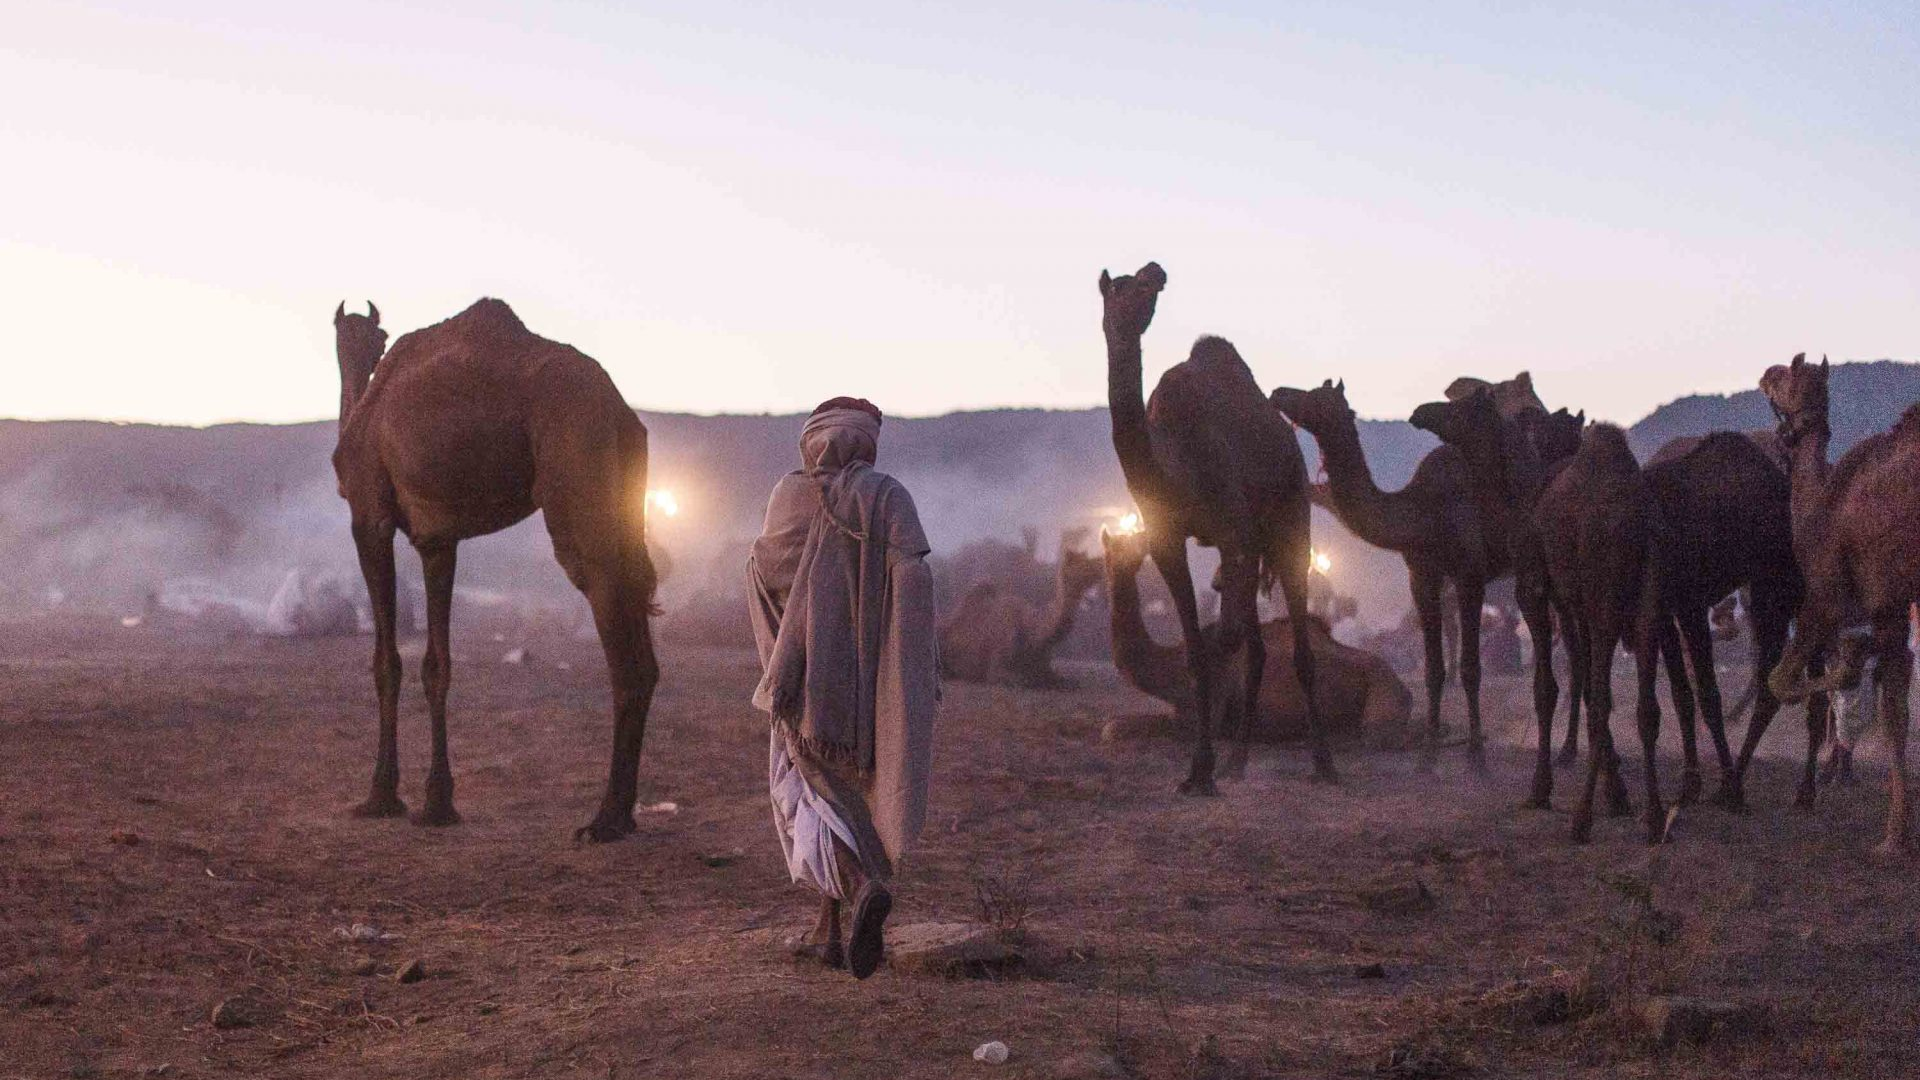 A camel herder at dawn on the dunes of Pushkar.